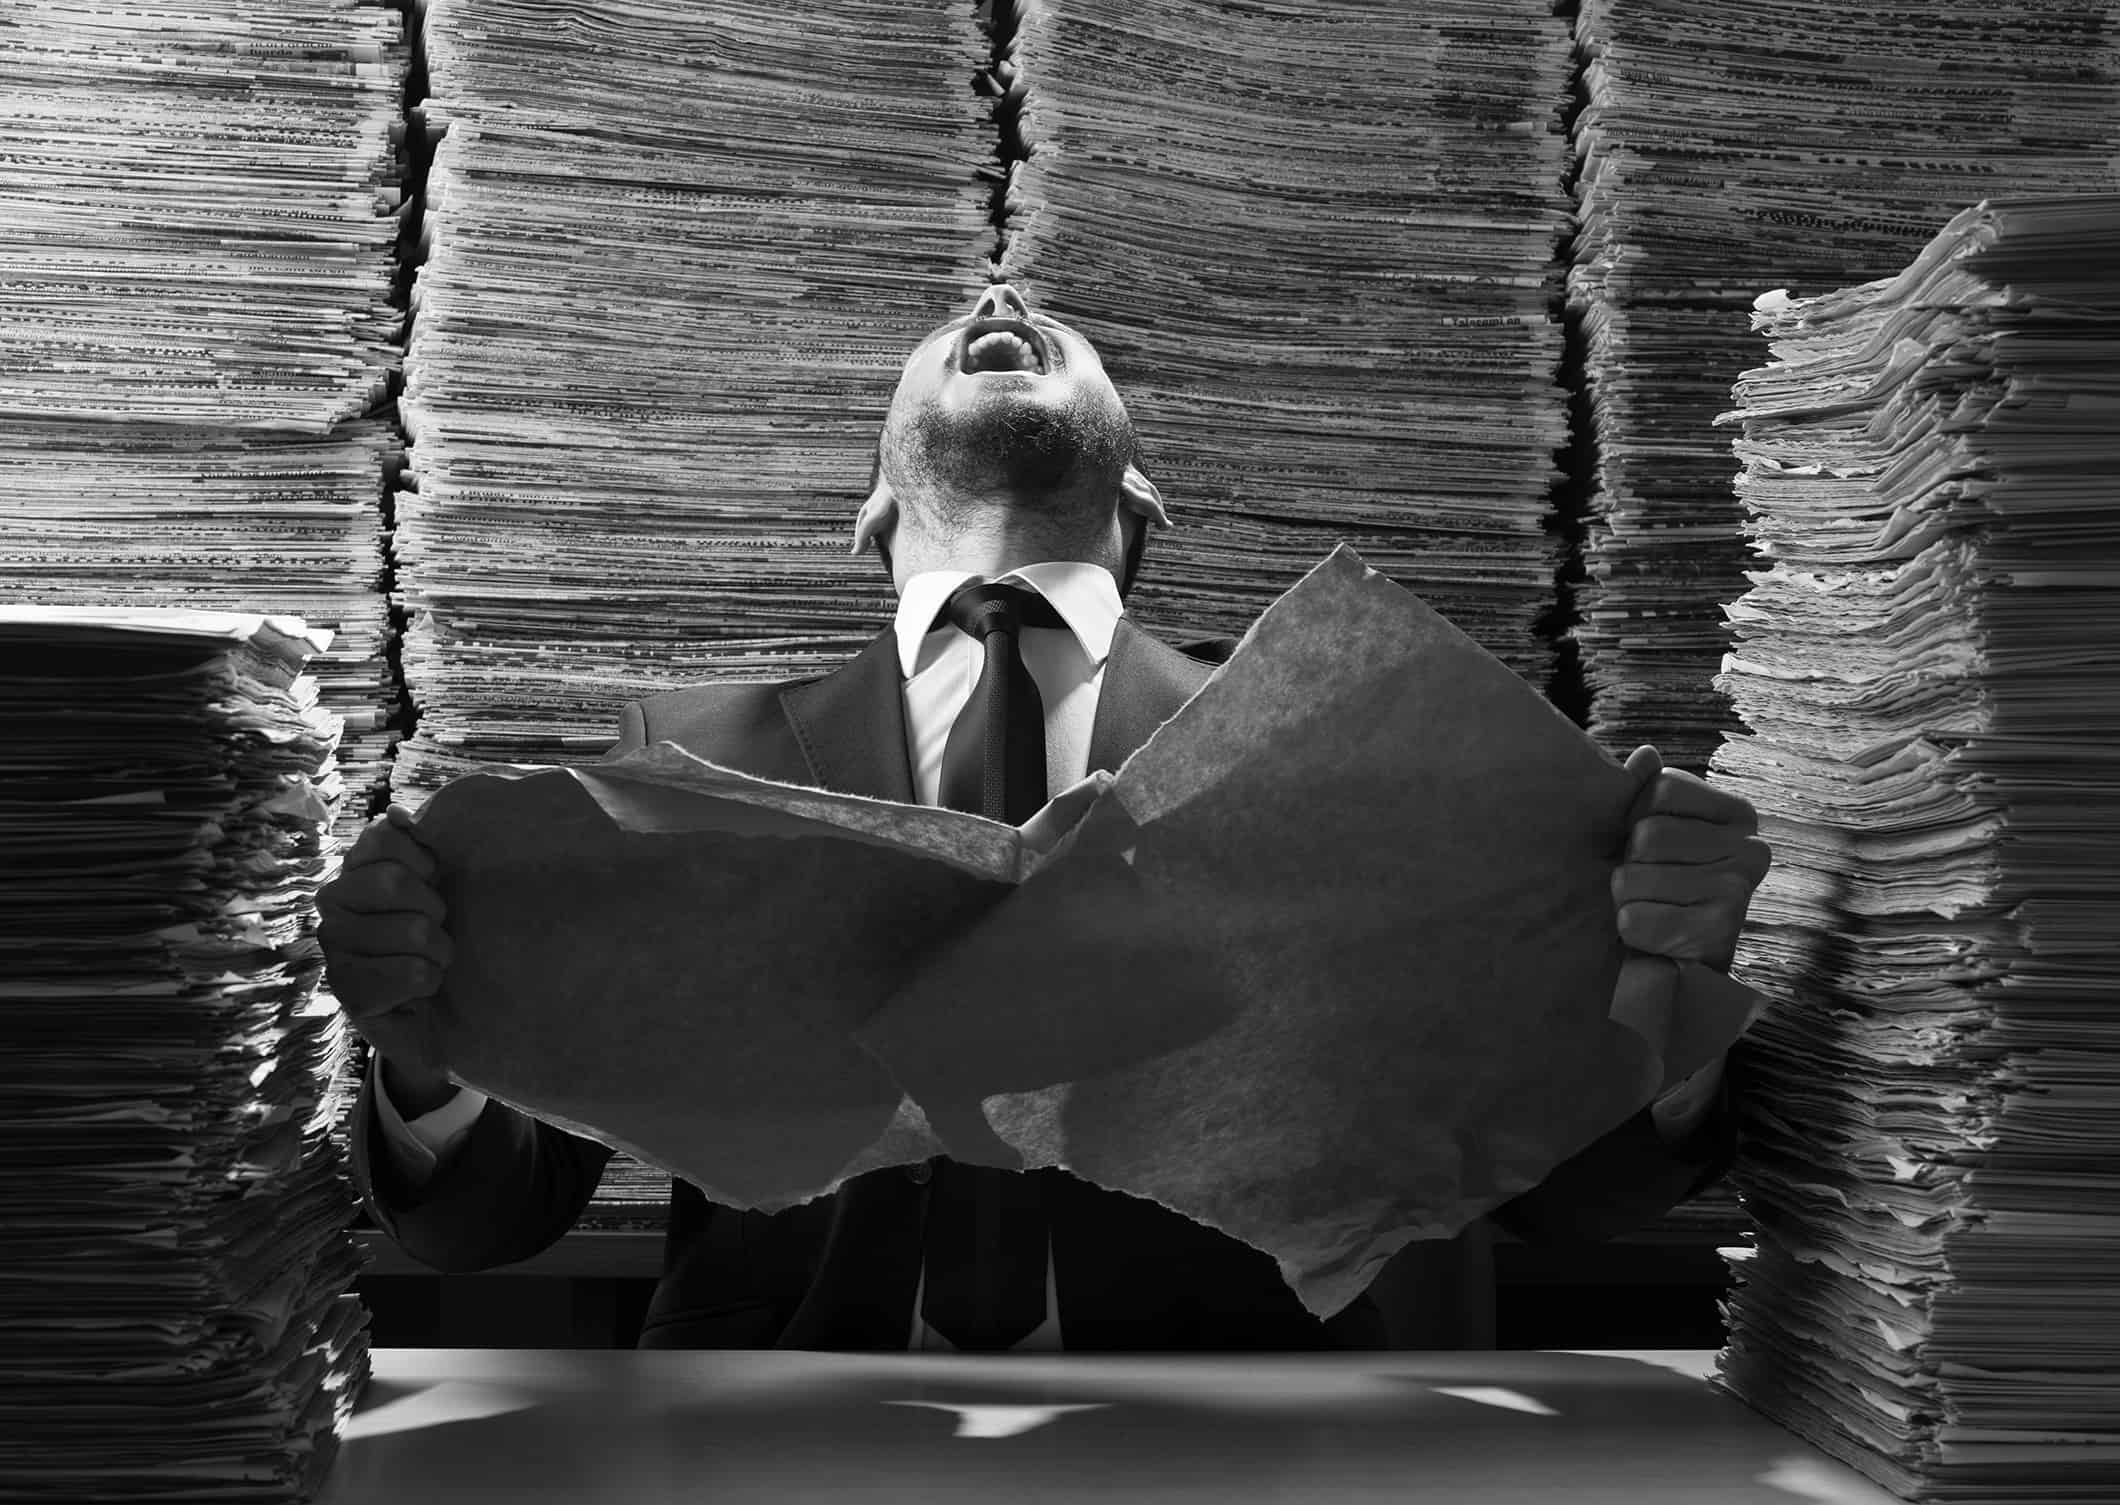 Office worker tearing up papers and screaming out due to red tape